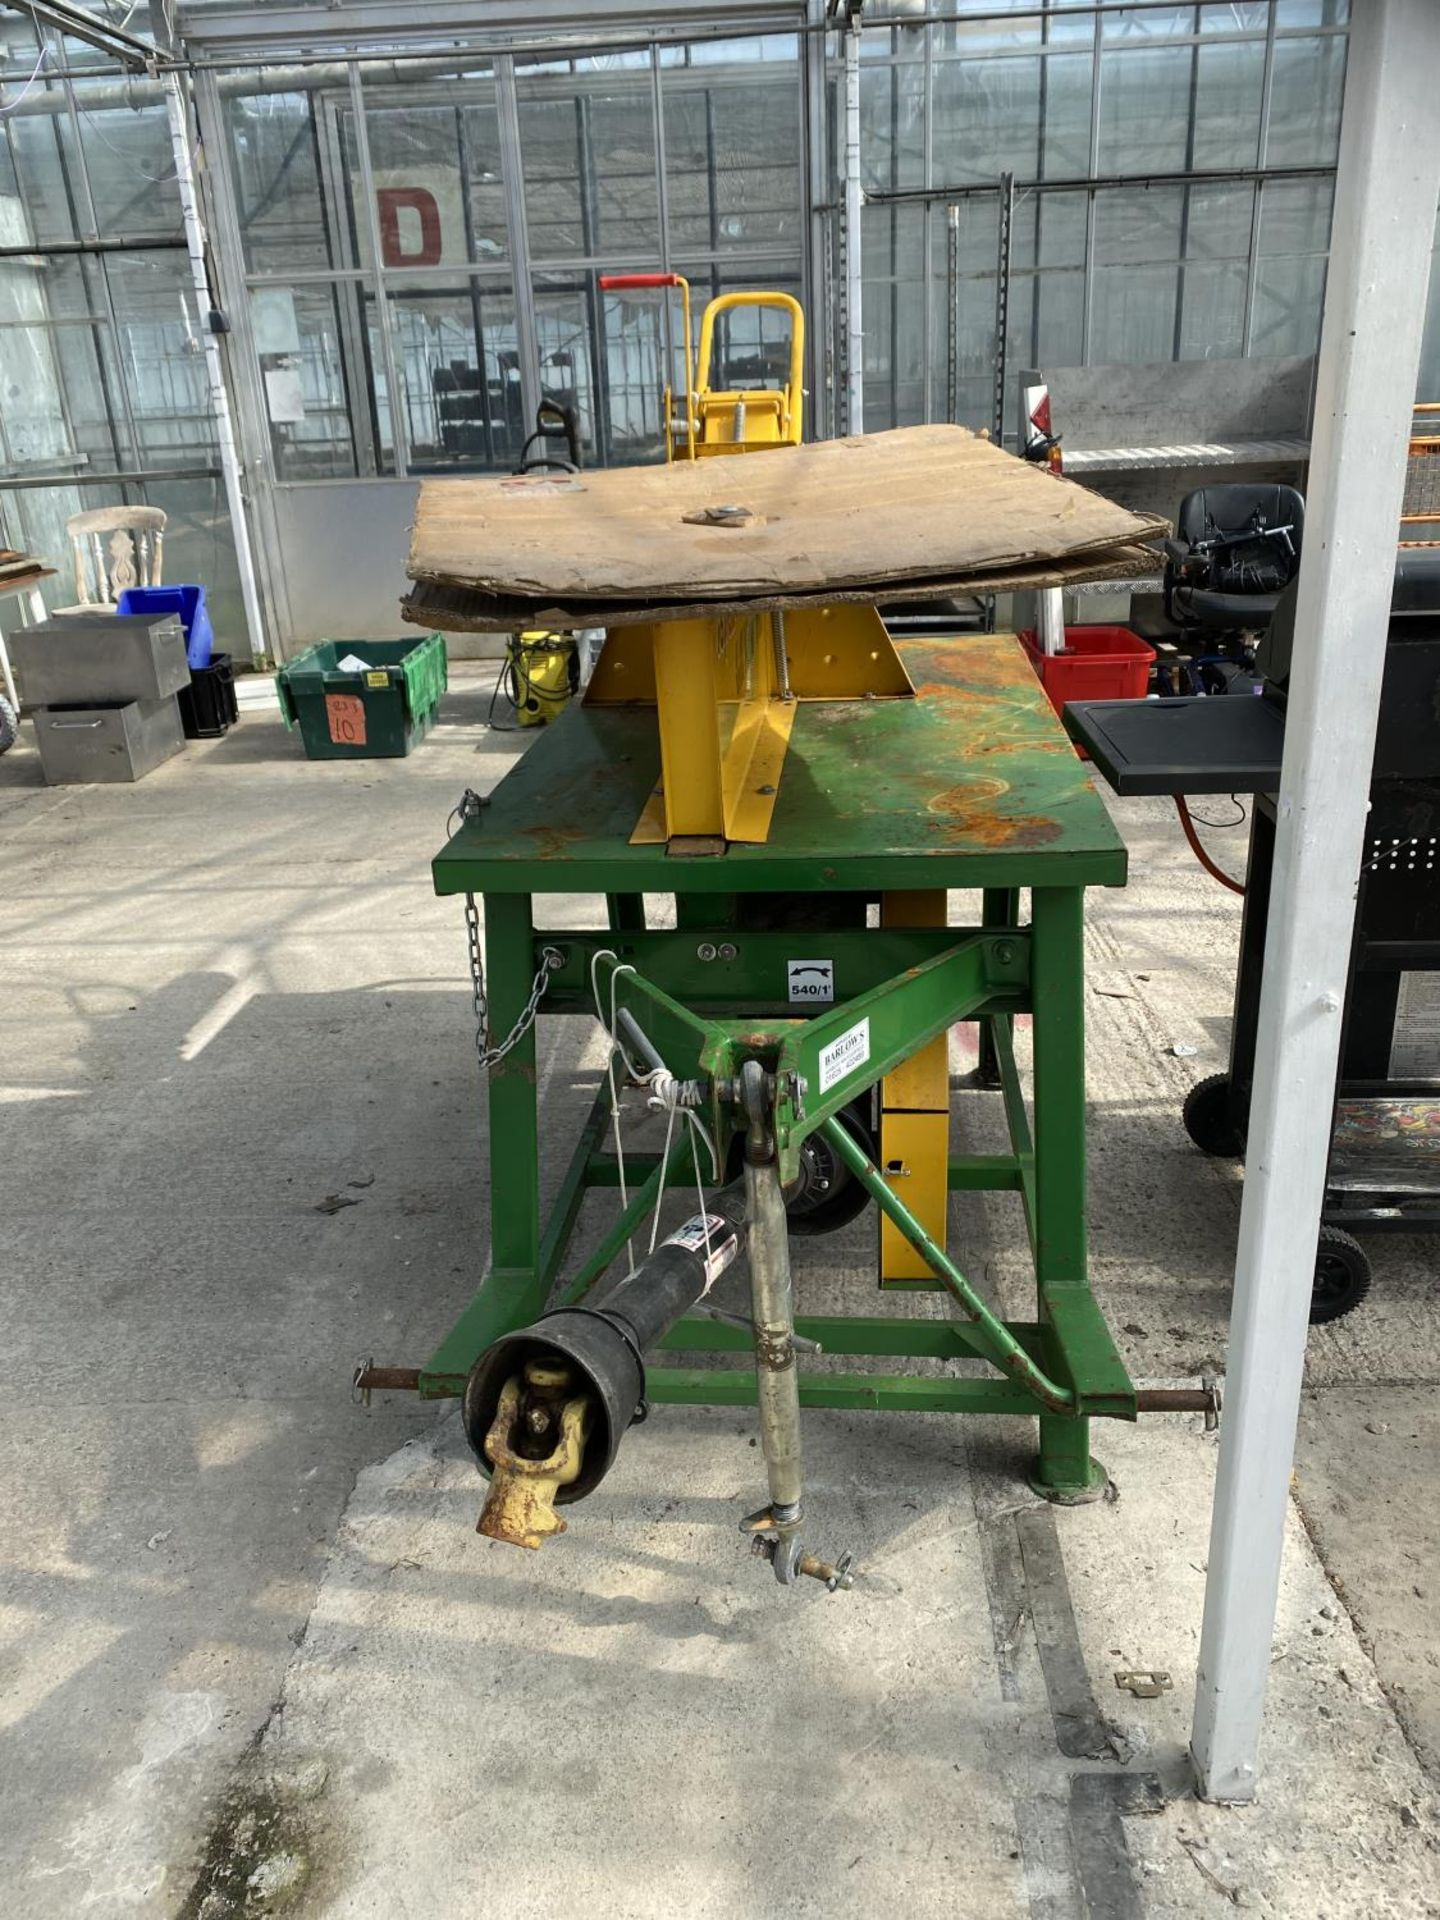 A KILWORTH PTO DRIVEN SAW BENCH AND BLADE BELIEVED WORKING NO WARRANTY + VAT - Image 2 of 4